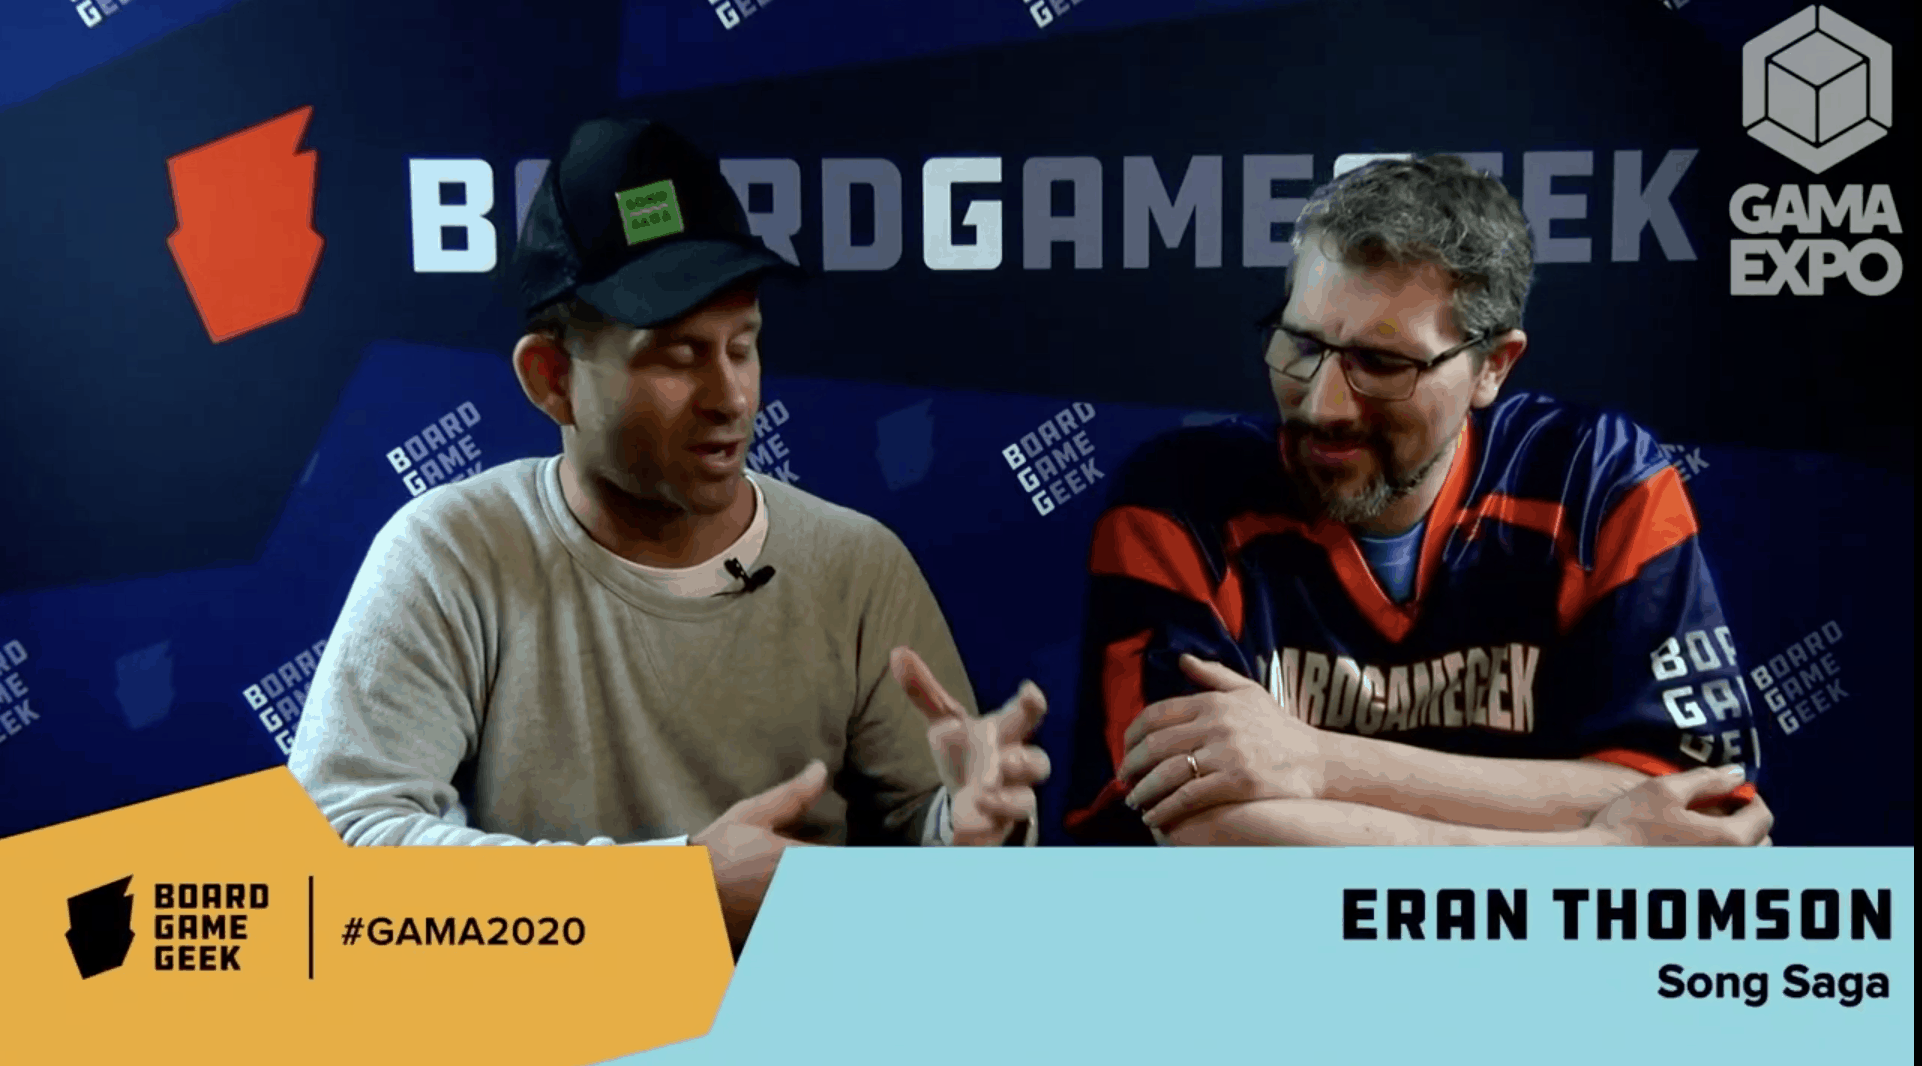 Song Saga on BoardGame Geek, Board Game Geek, GAMA, Eran Thomson, Interview